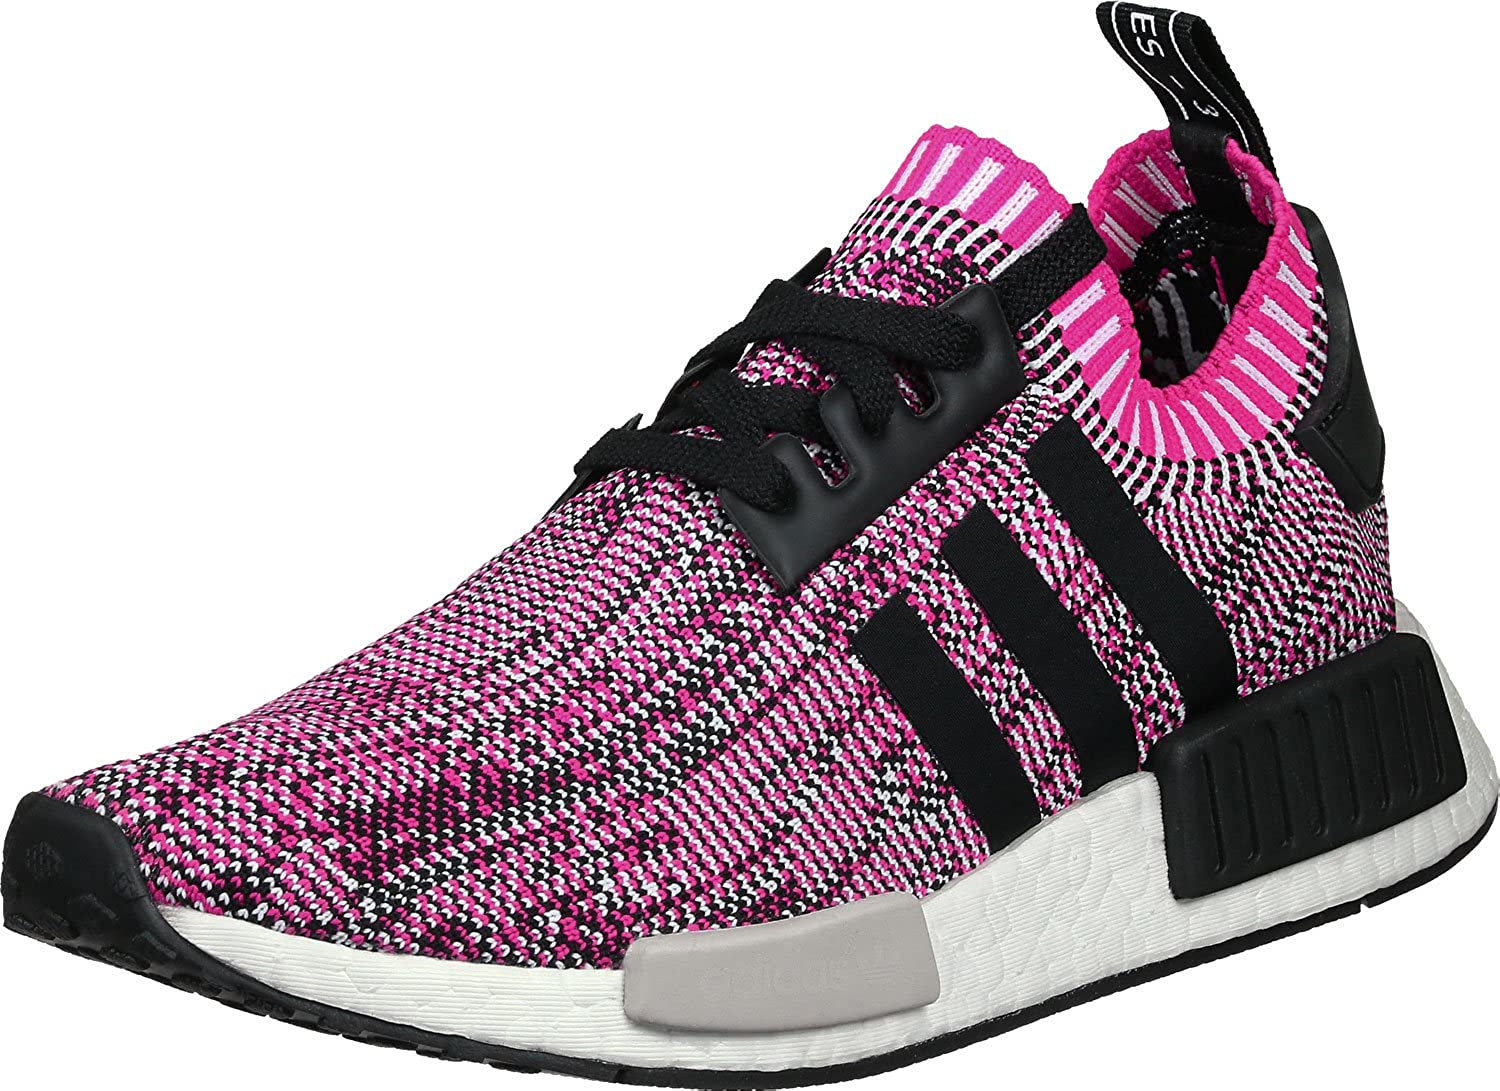 adidas Women's NMD_R1PK shoes